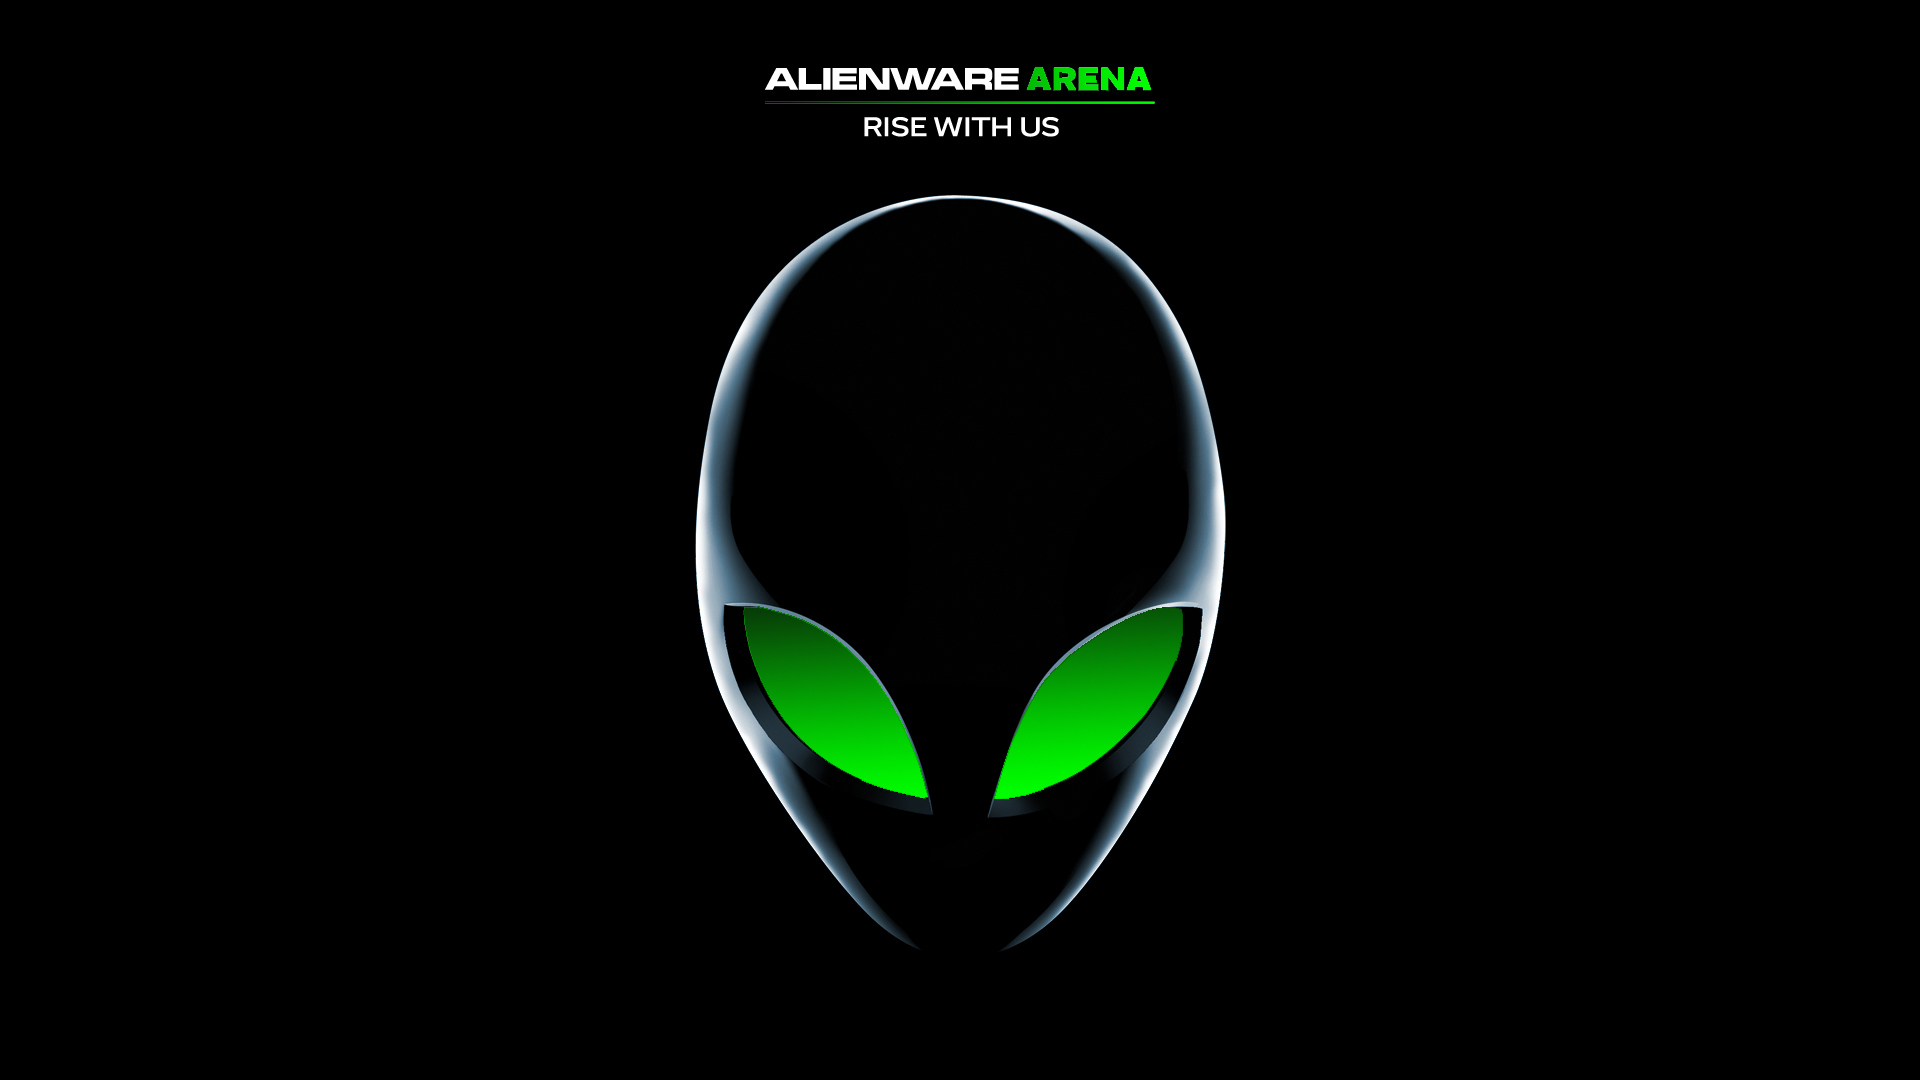 Alienware Green Wallpaper - WallpaperSafari